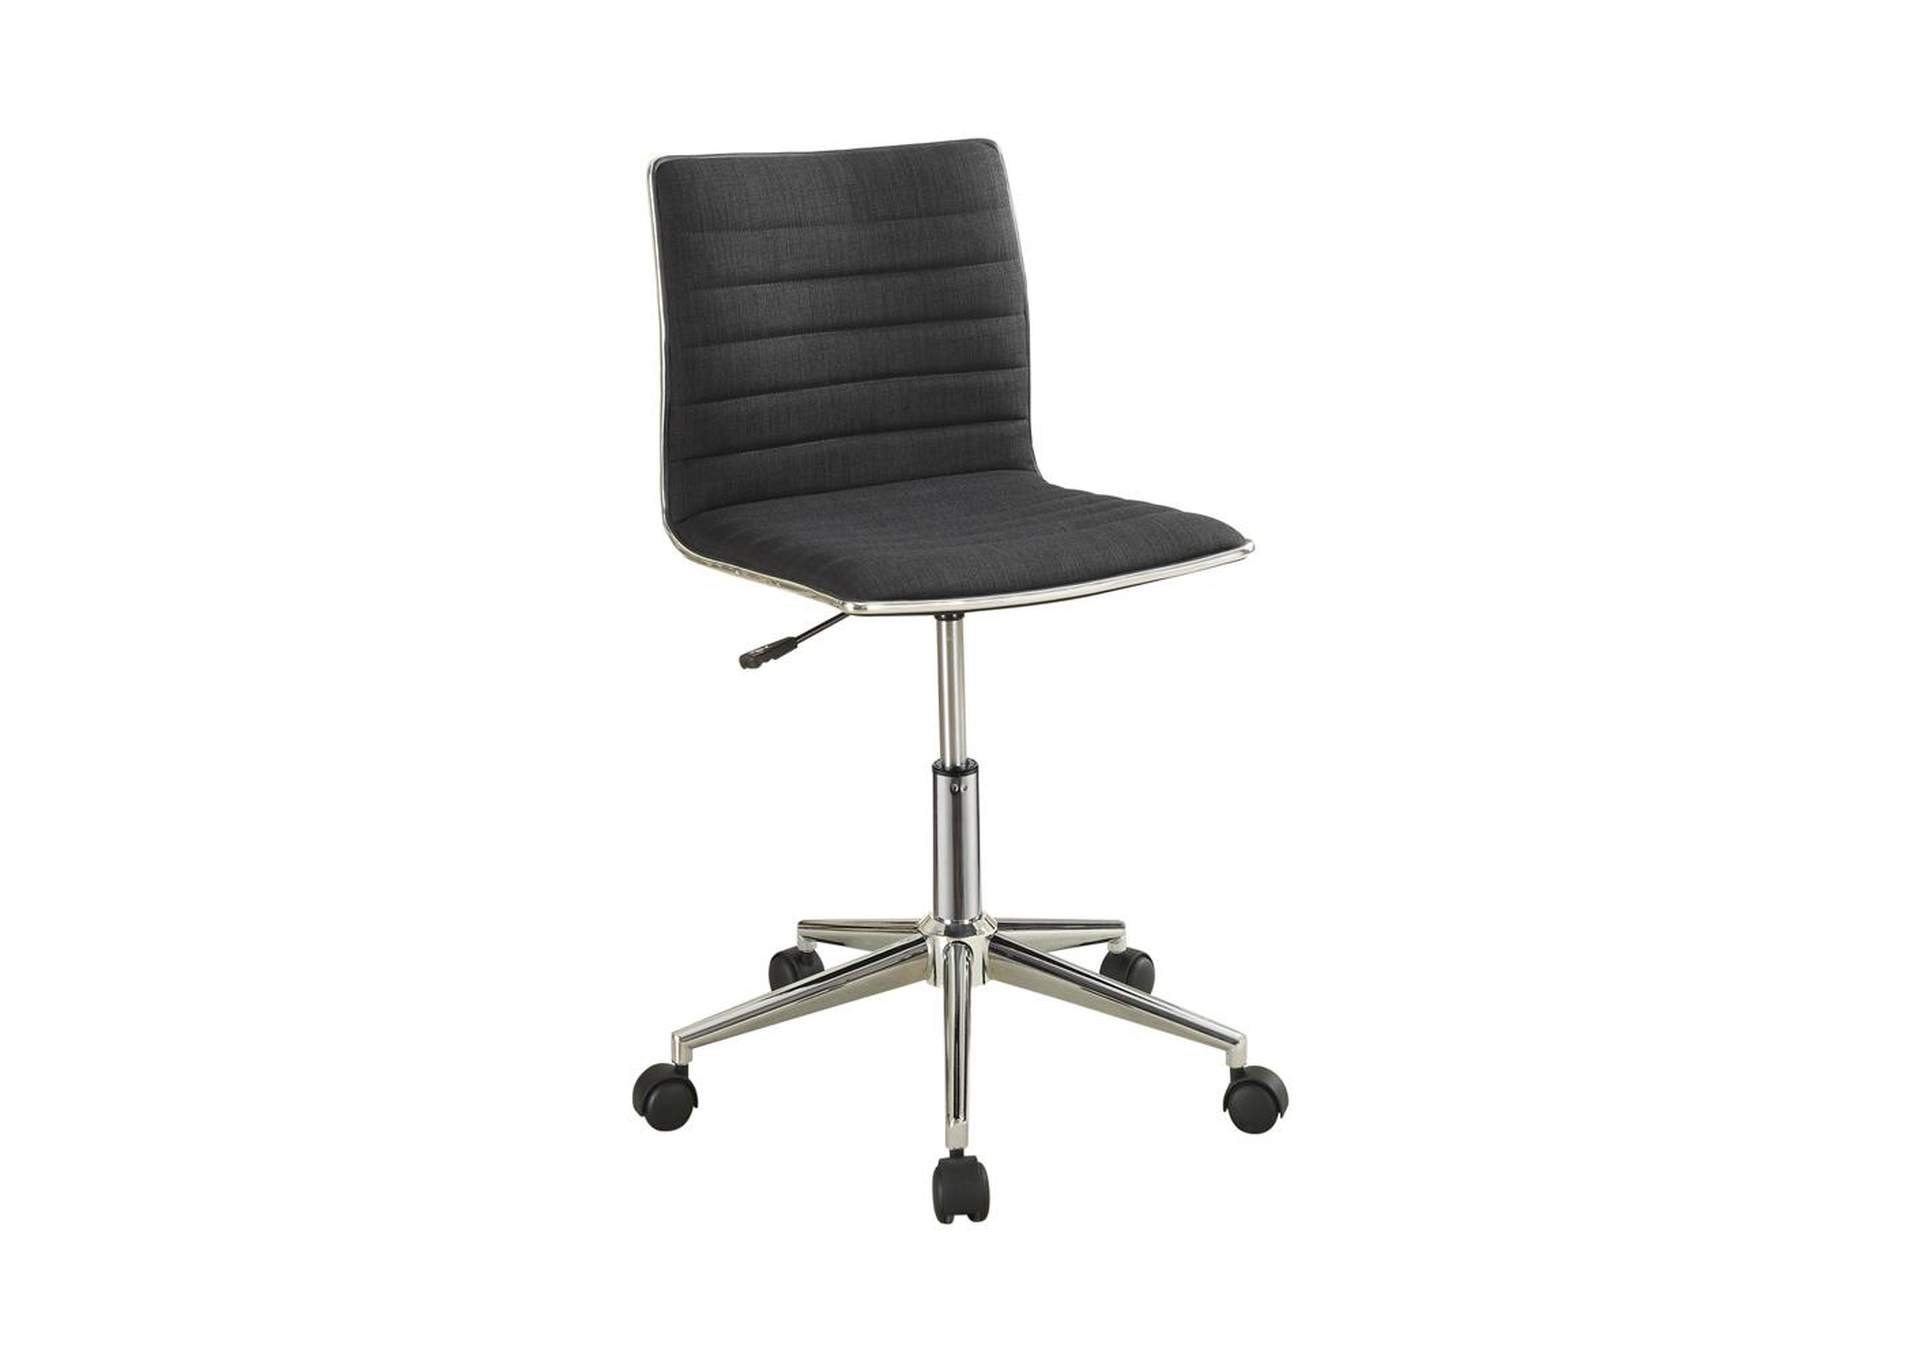 Modern Black and Chrome Home Office Chair,Coaster Furniture